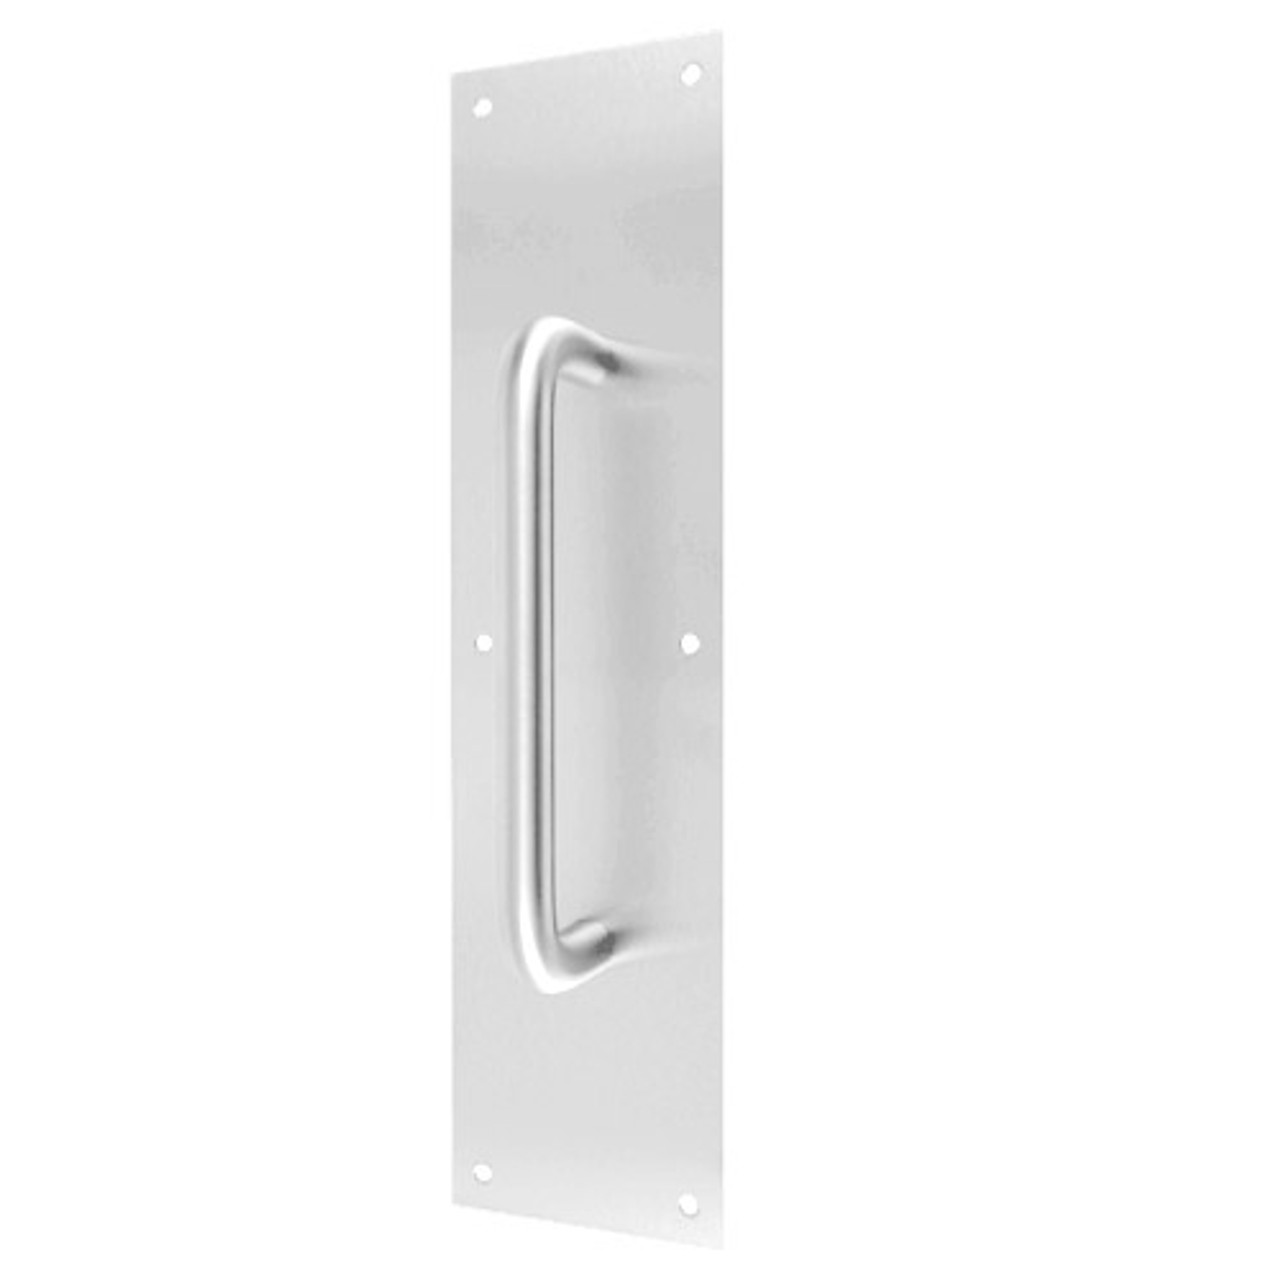 """7111-628 Don Jo Pull Plates with 3/4"""" Round Pulls in Aluminum Finish"""